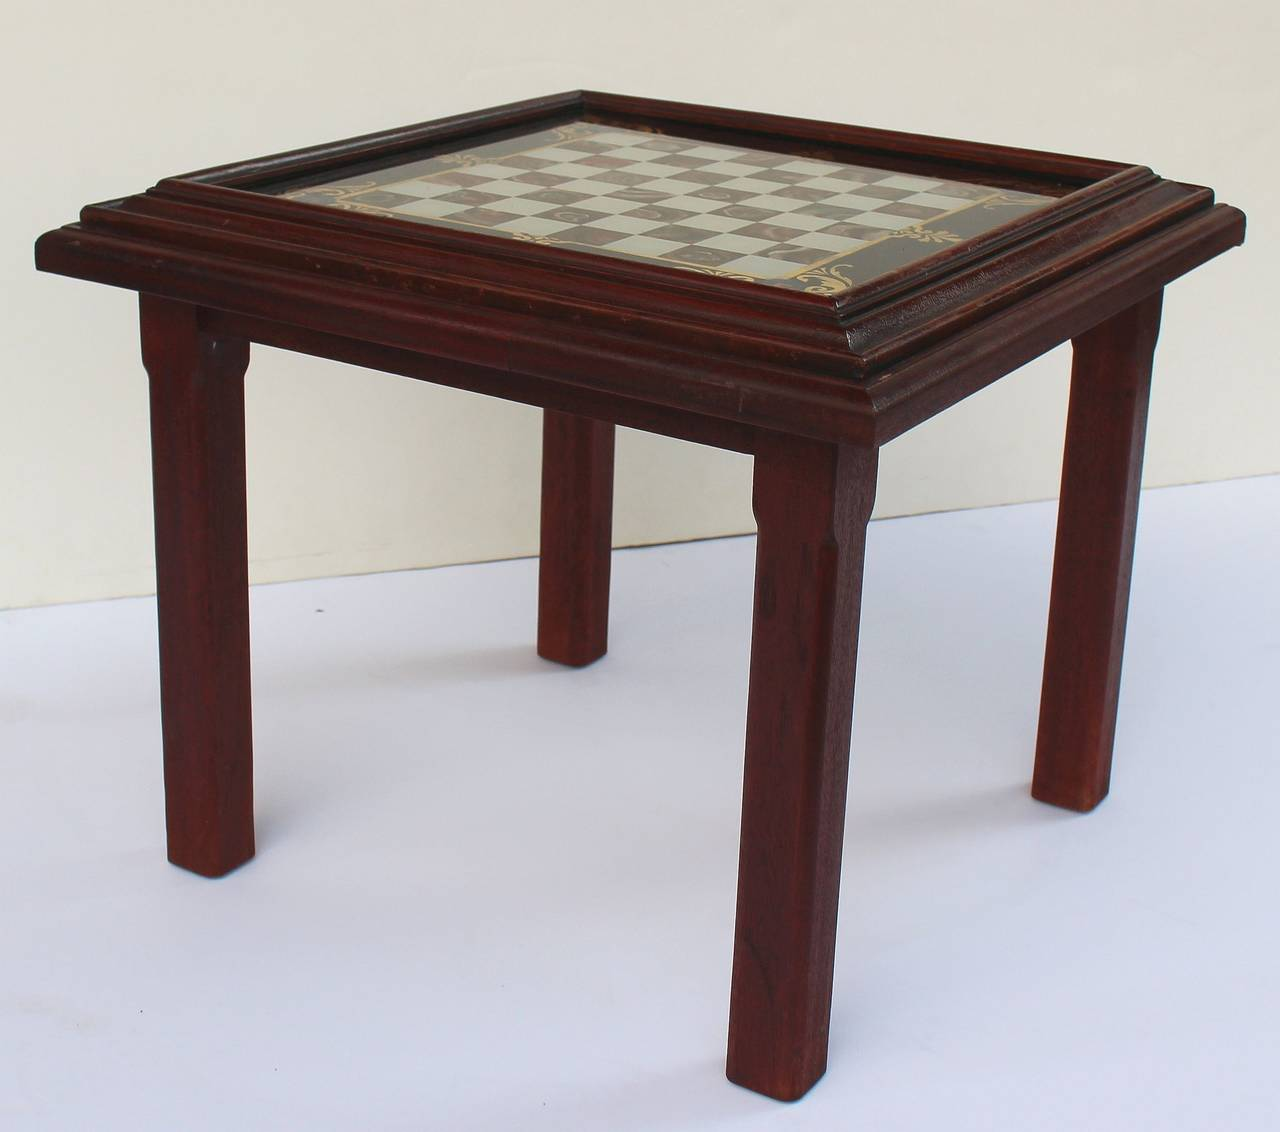 Charmant An English Low Or Cocktail Table With A Games Top, Featuring A Square  Reverse Faux